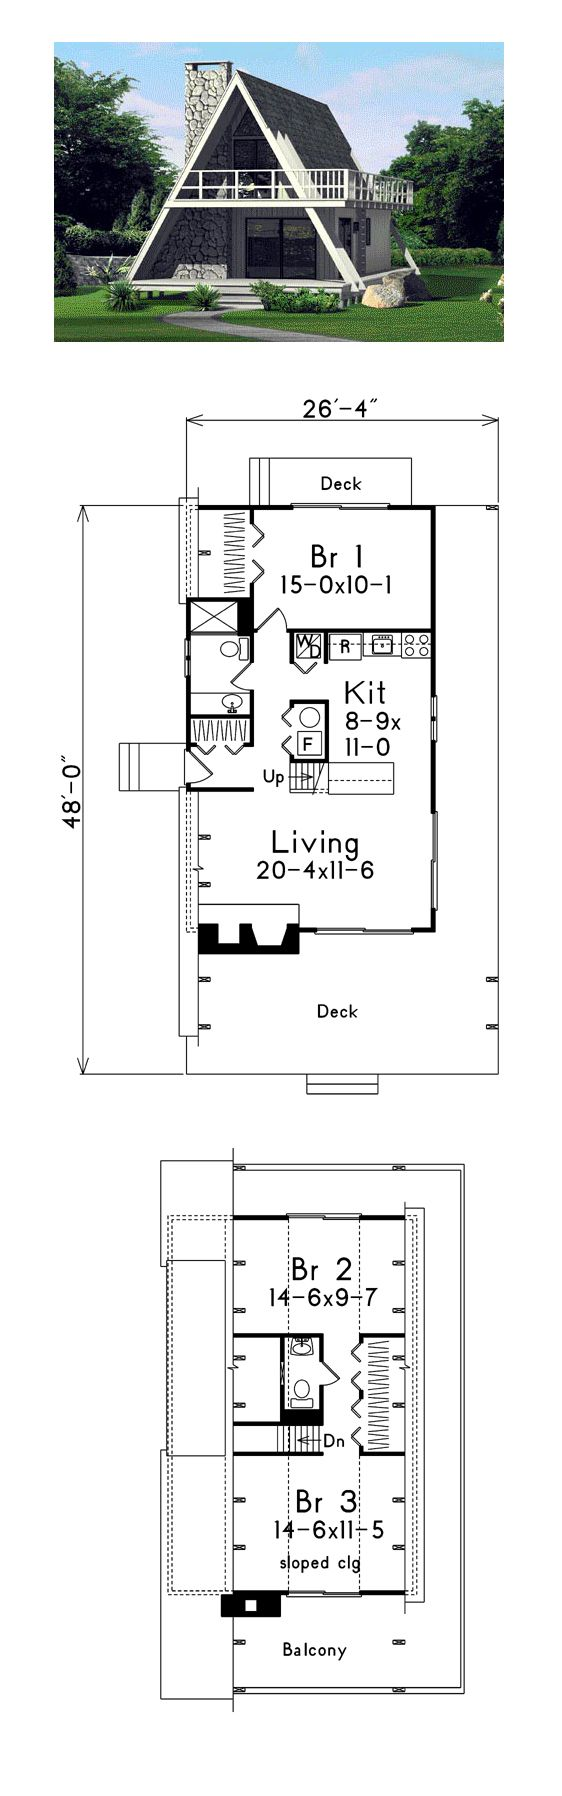 A frame house plan 86950 total living area 1272 sq ft 3 bedrooms and 1 5 bathrooms houseplan aframe